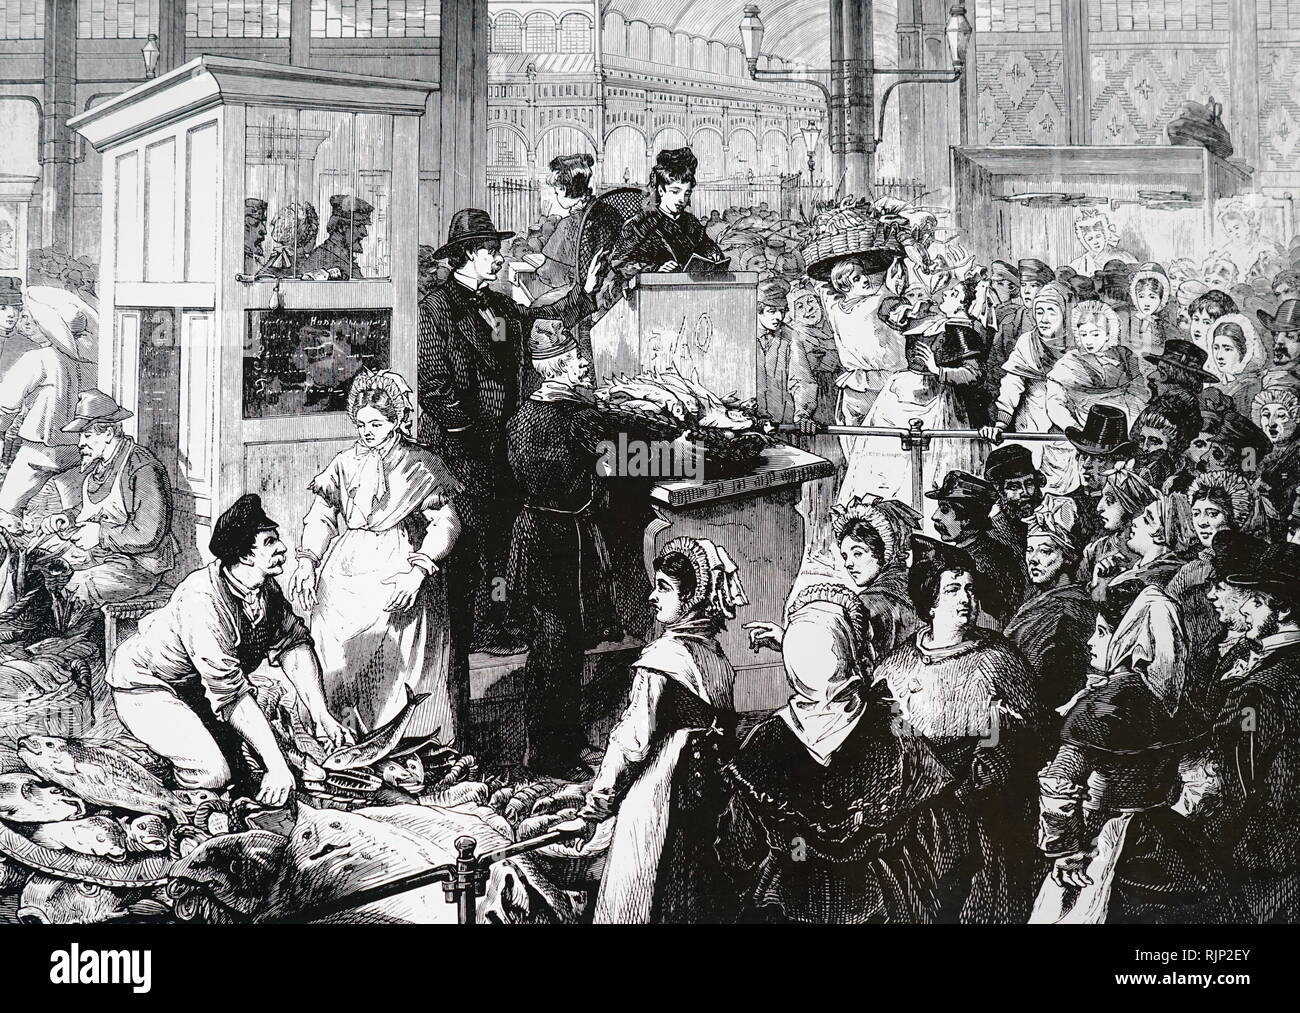 An engraving depicting a Paris fish market during lent. Dated 19th century - Stock Image